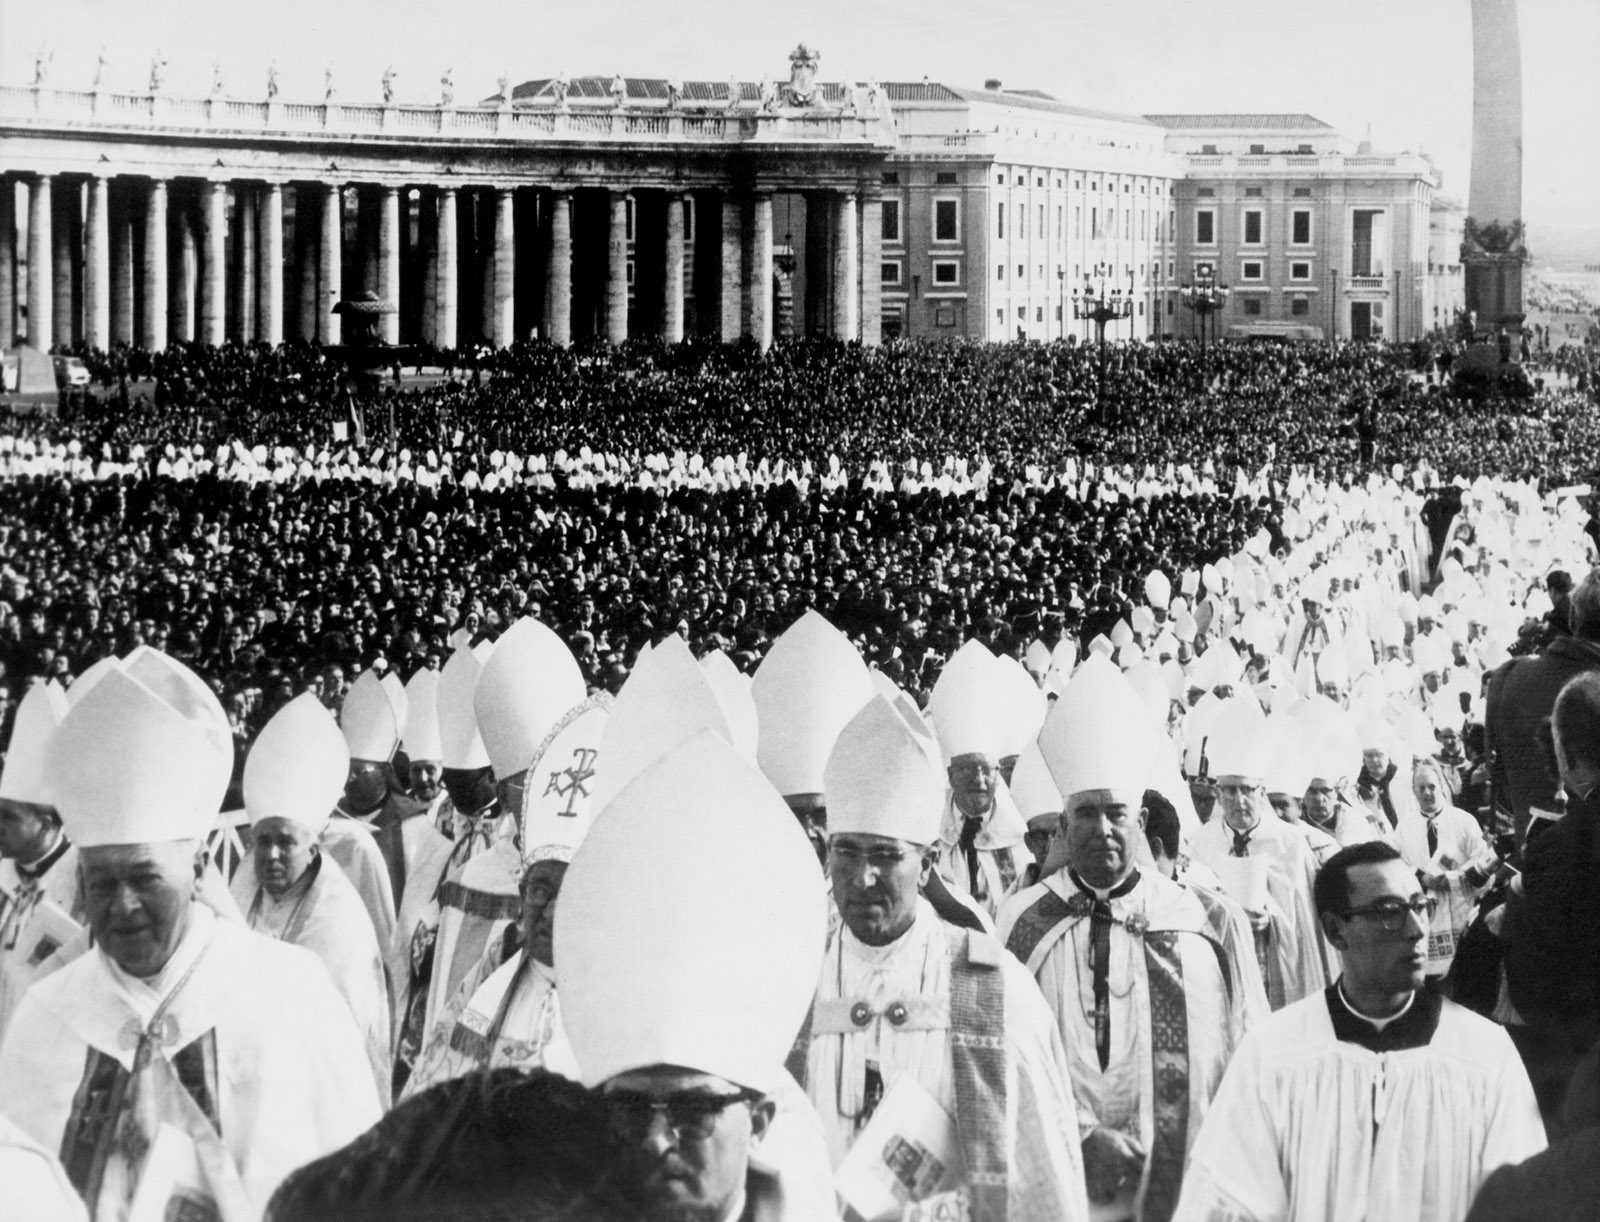 The closing ceremony of the Second Vatican Council, Vatican City, December 1965